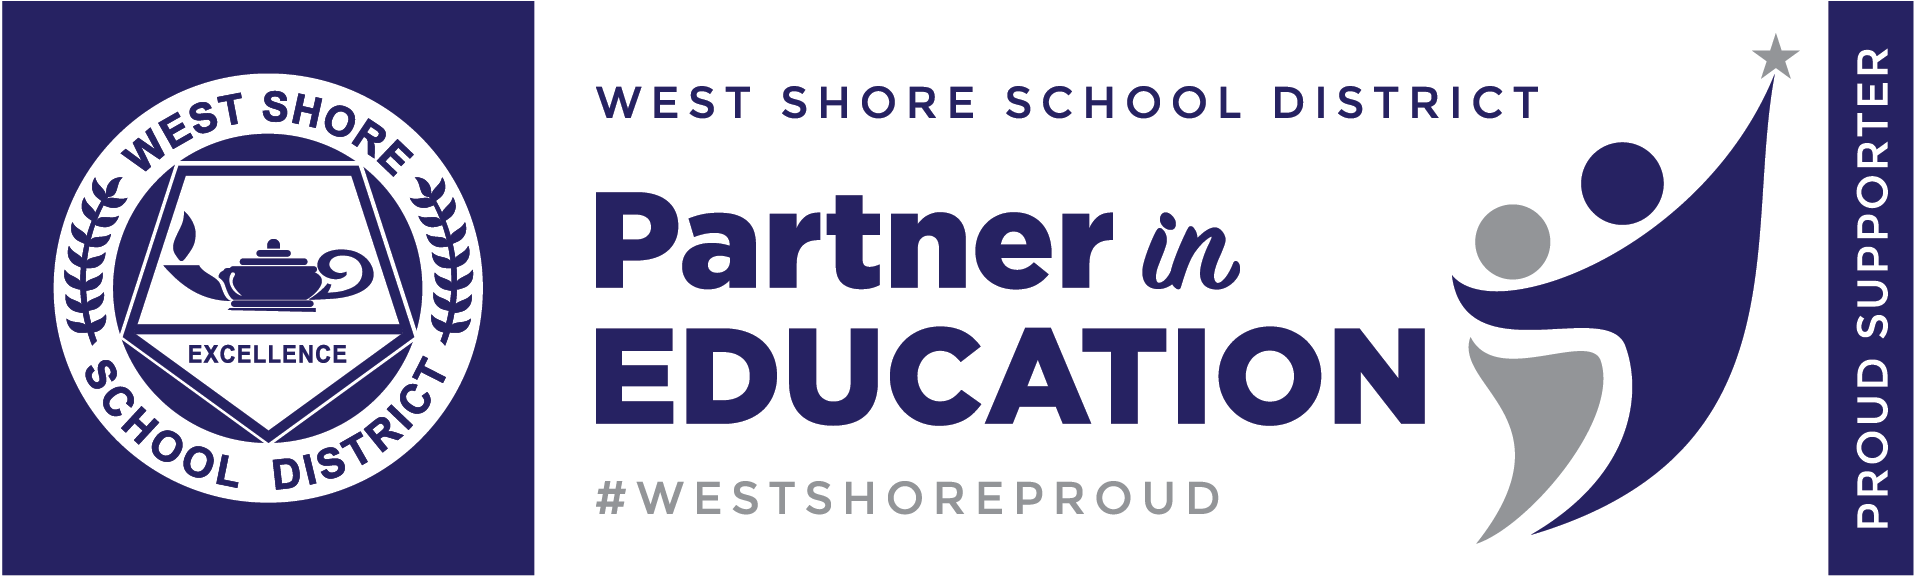 partner in education banner